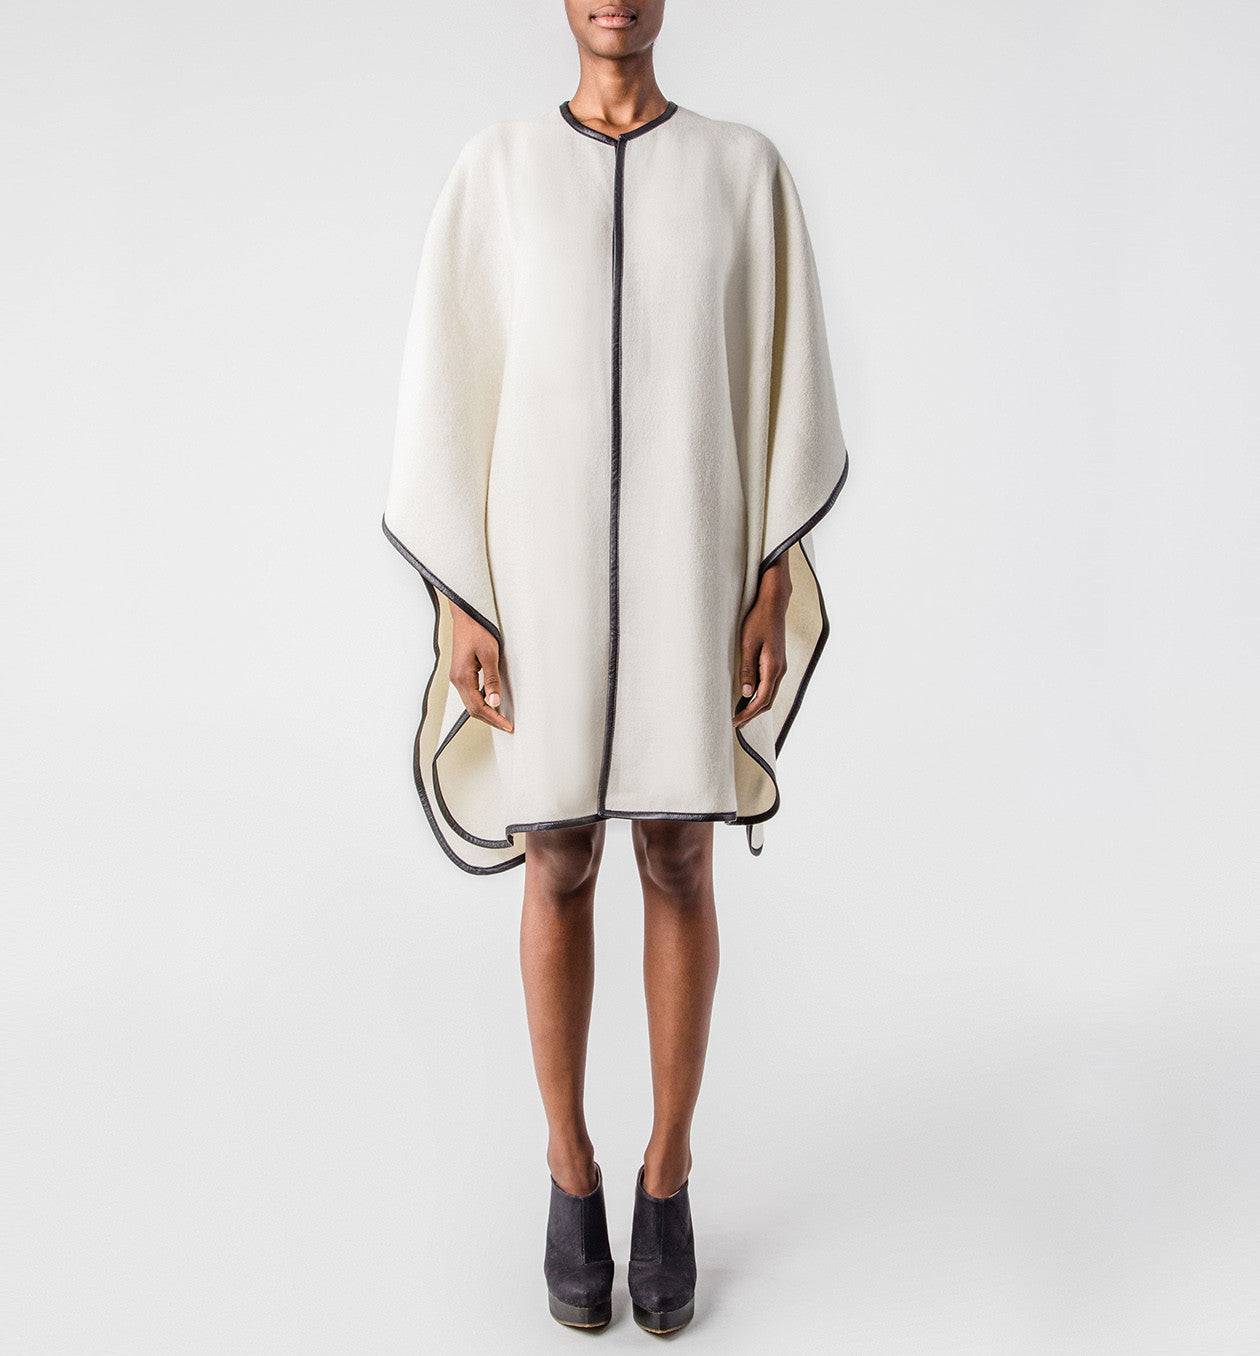 Exclusive Ivory Handwoven Cape